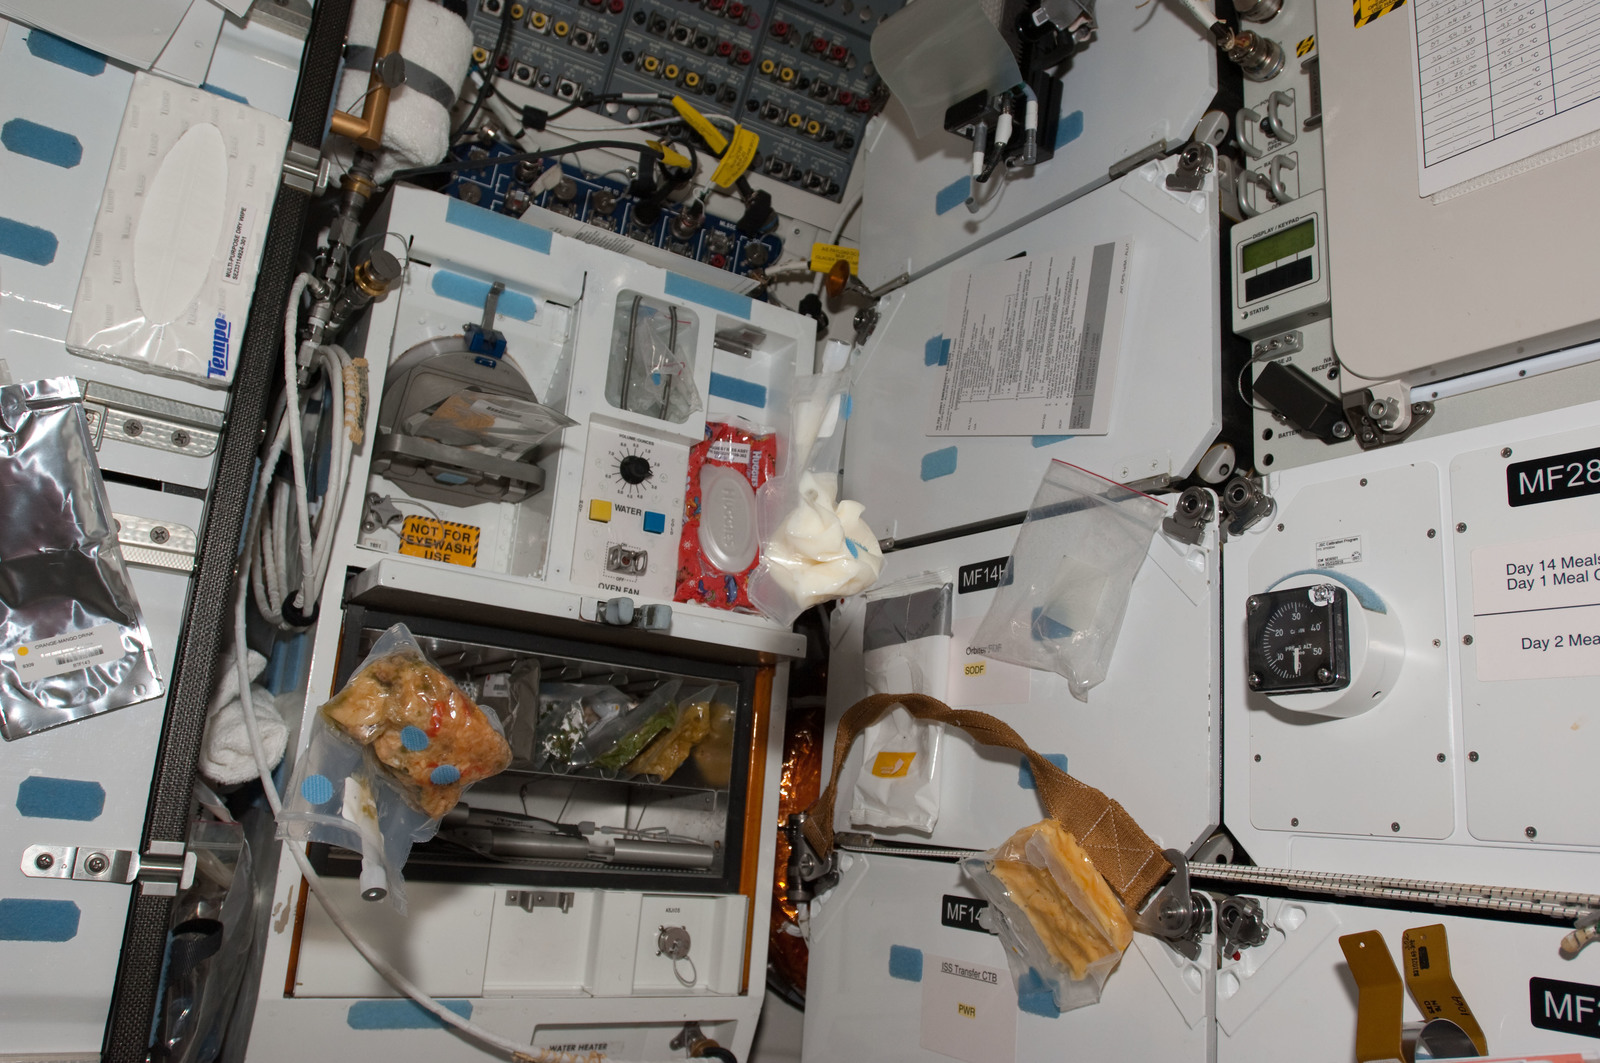 S130E008453 - STS-130 - Galley on MDDK